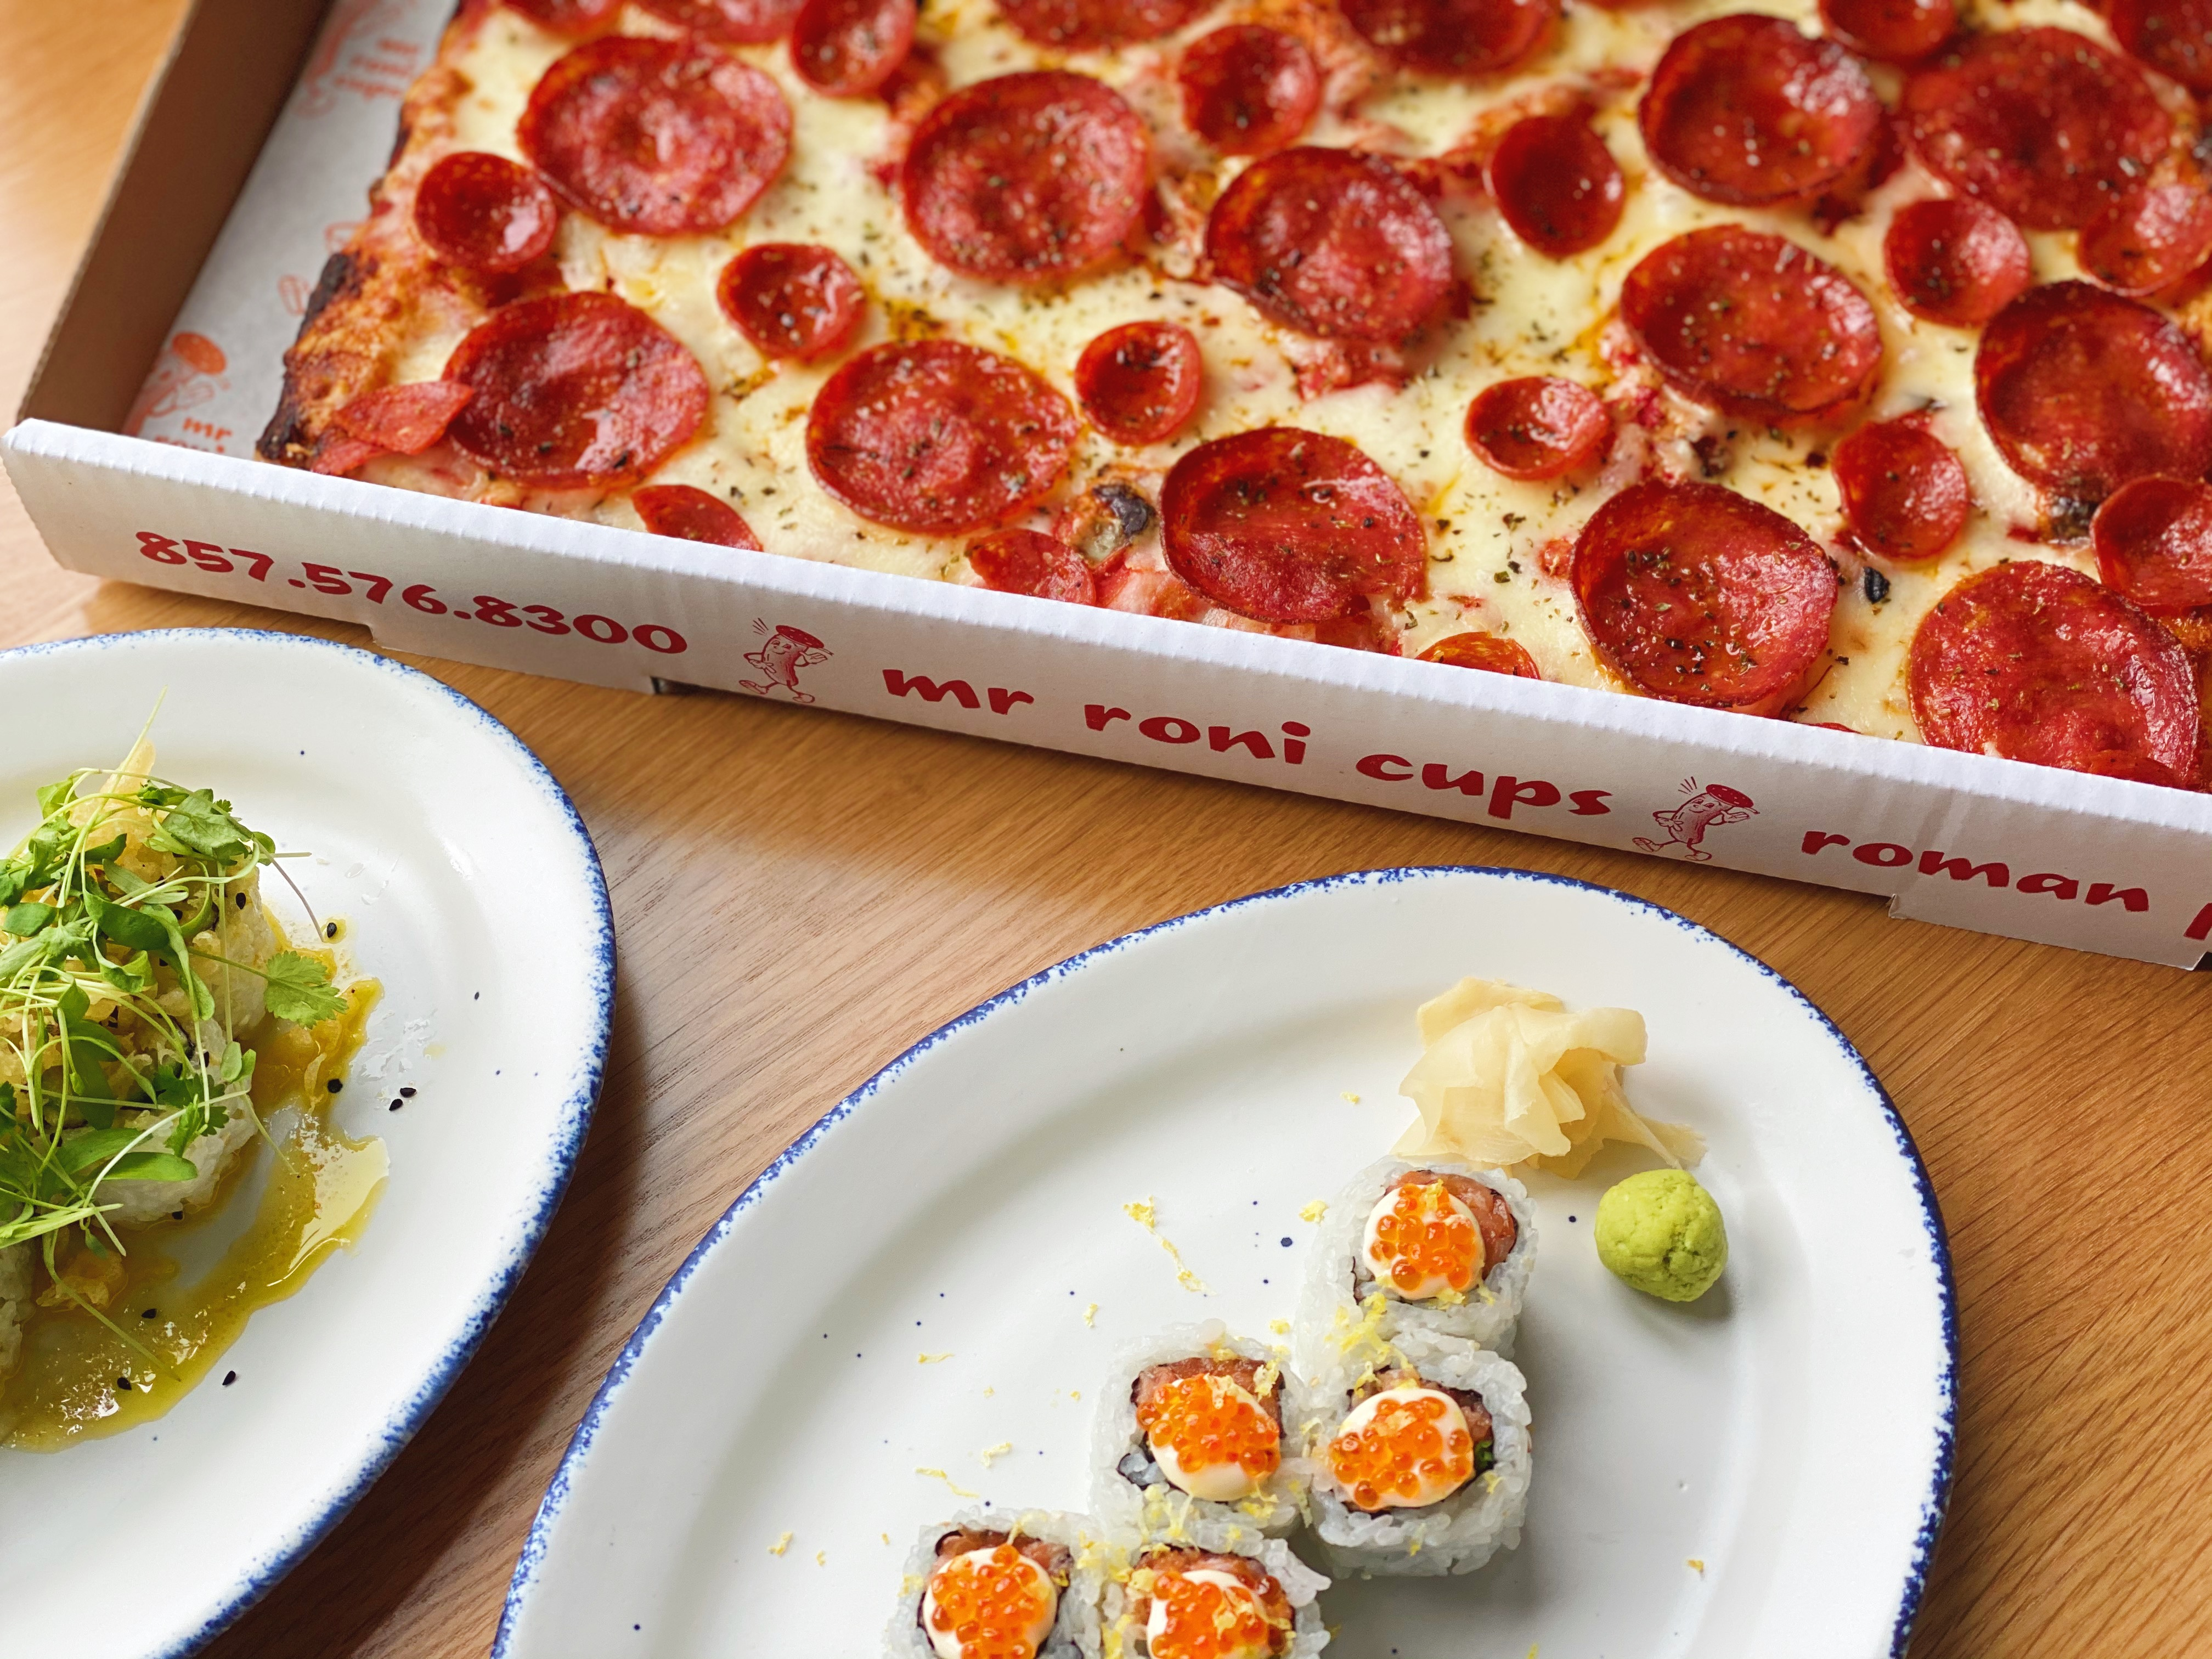 A salad, sushi roll, and pepperoni pizza situaded side by side on a wooden table